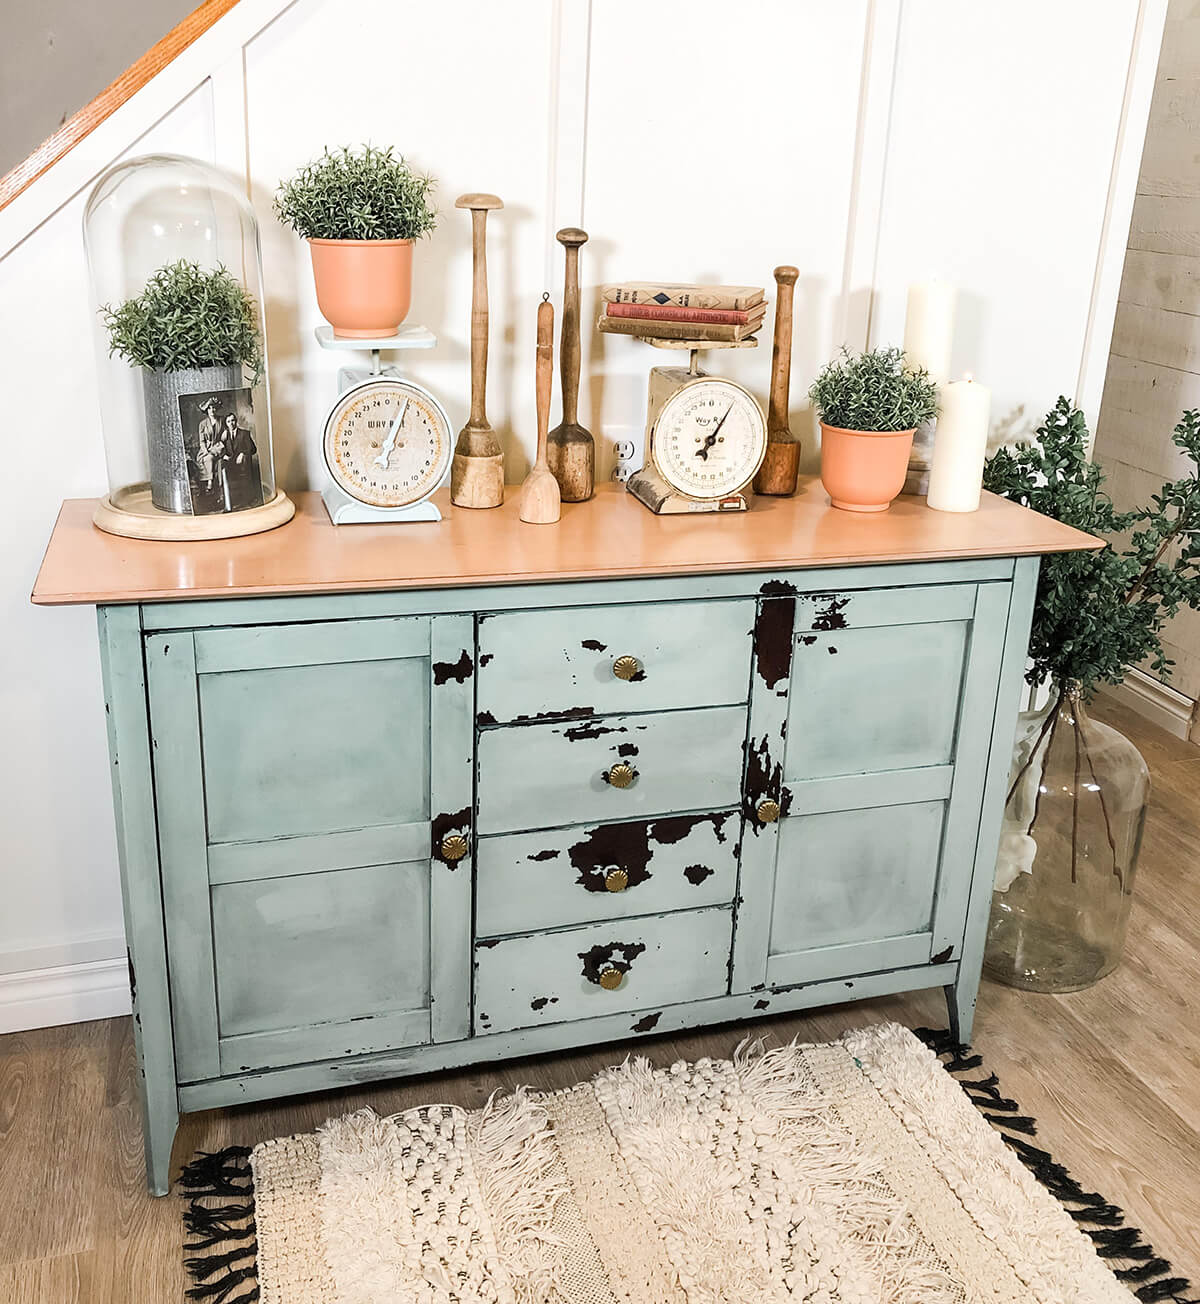 Vintage Feel and Rustic Look Mint Credenza